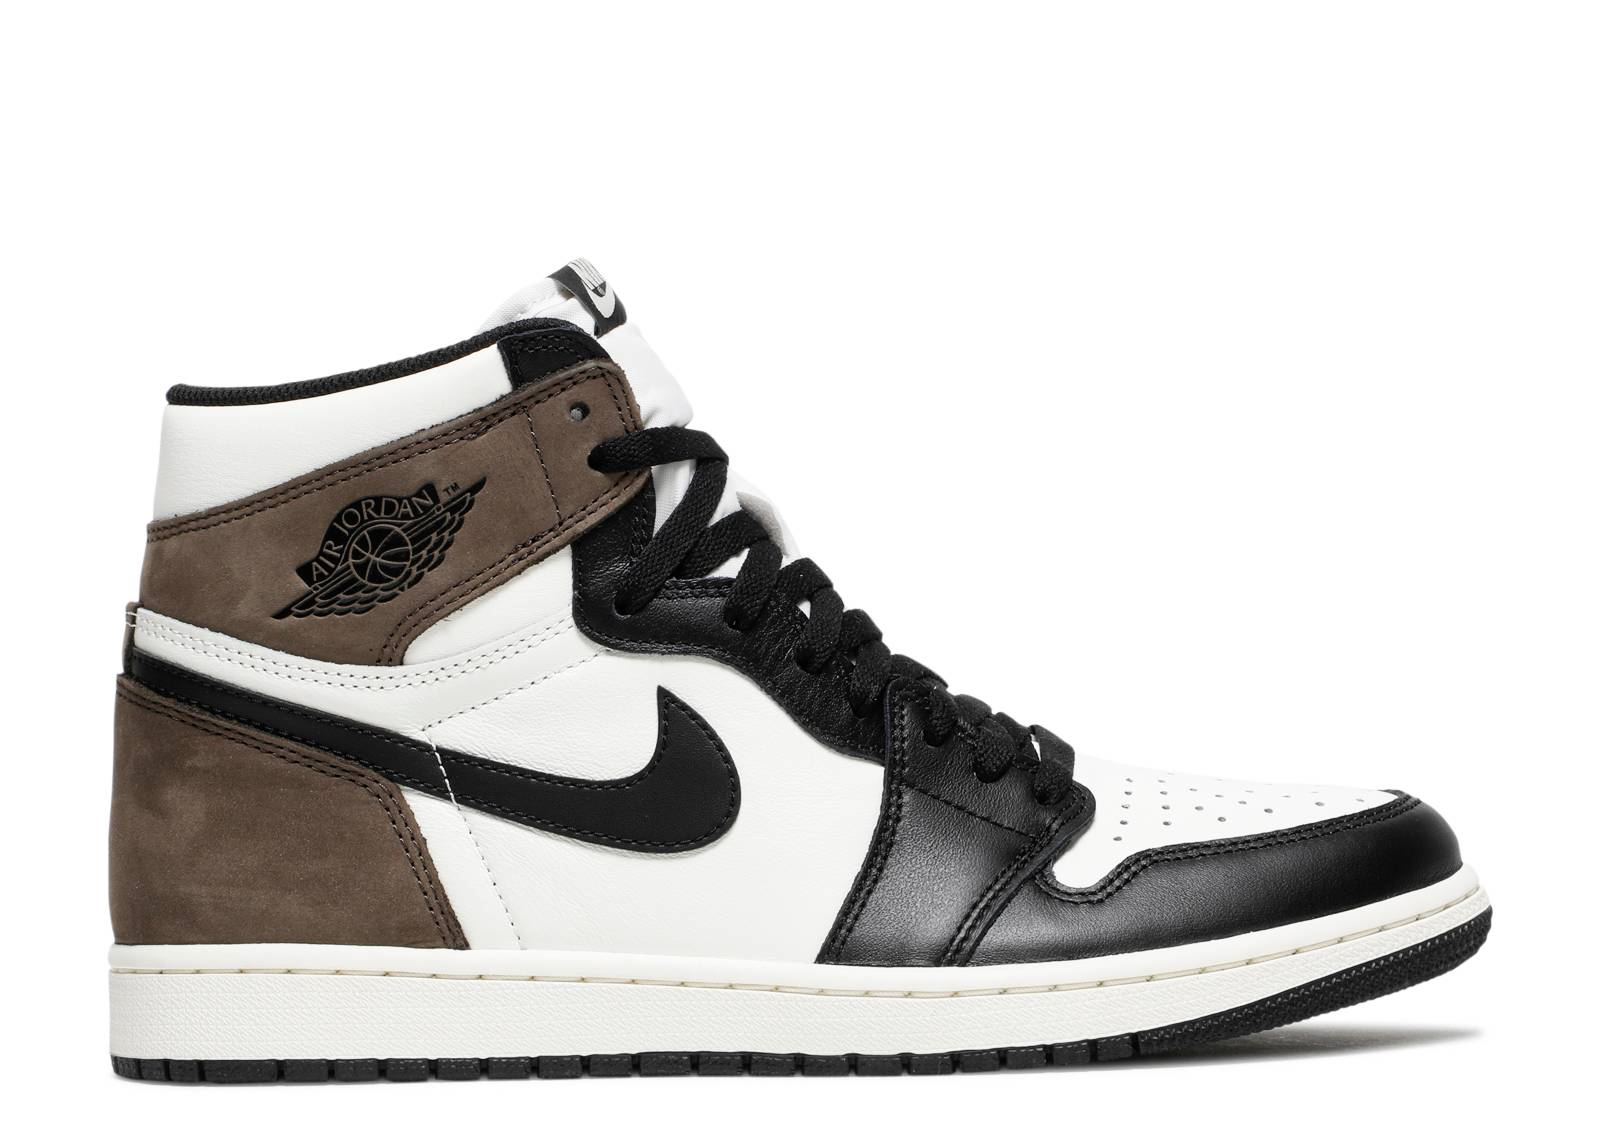 AIR JORDAN 1 RETRO HIGH OG 'DARK MOCHA'